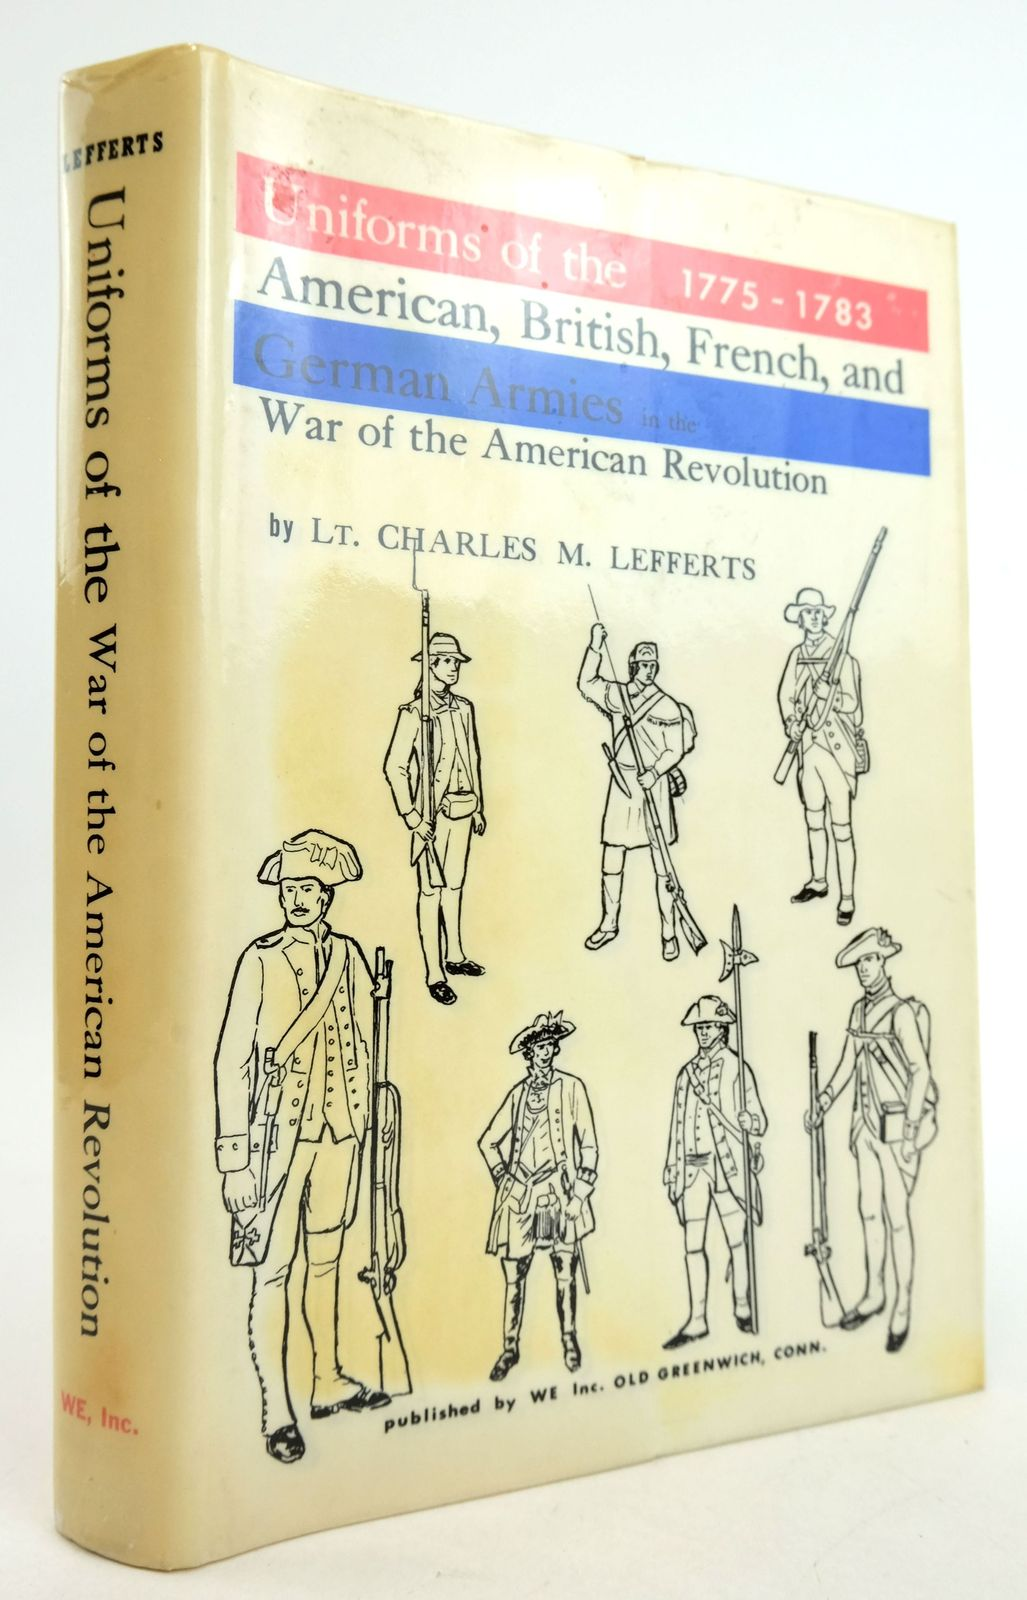 Photo of UNIFORMS OF THE AMERICAN, BRITISH, FRENCH, AND GERMAN ARMIES IN THE WAR OF THE AMERICAN REVOLUTION 1775-1783 written by Lefferts, Charles M. illustrated by Lefferts, Charles M. published by WE Inc. (STOCK CODE: 1819919)  for sale by Stella & Rose's Books